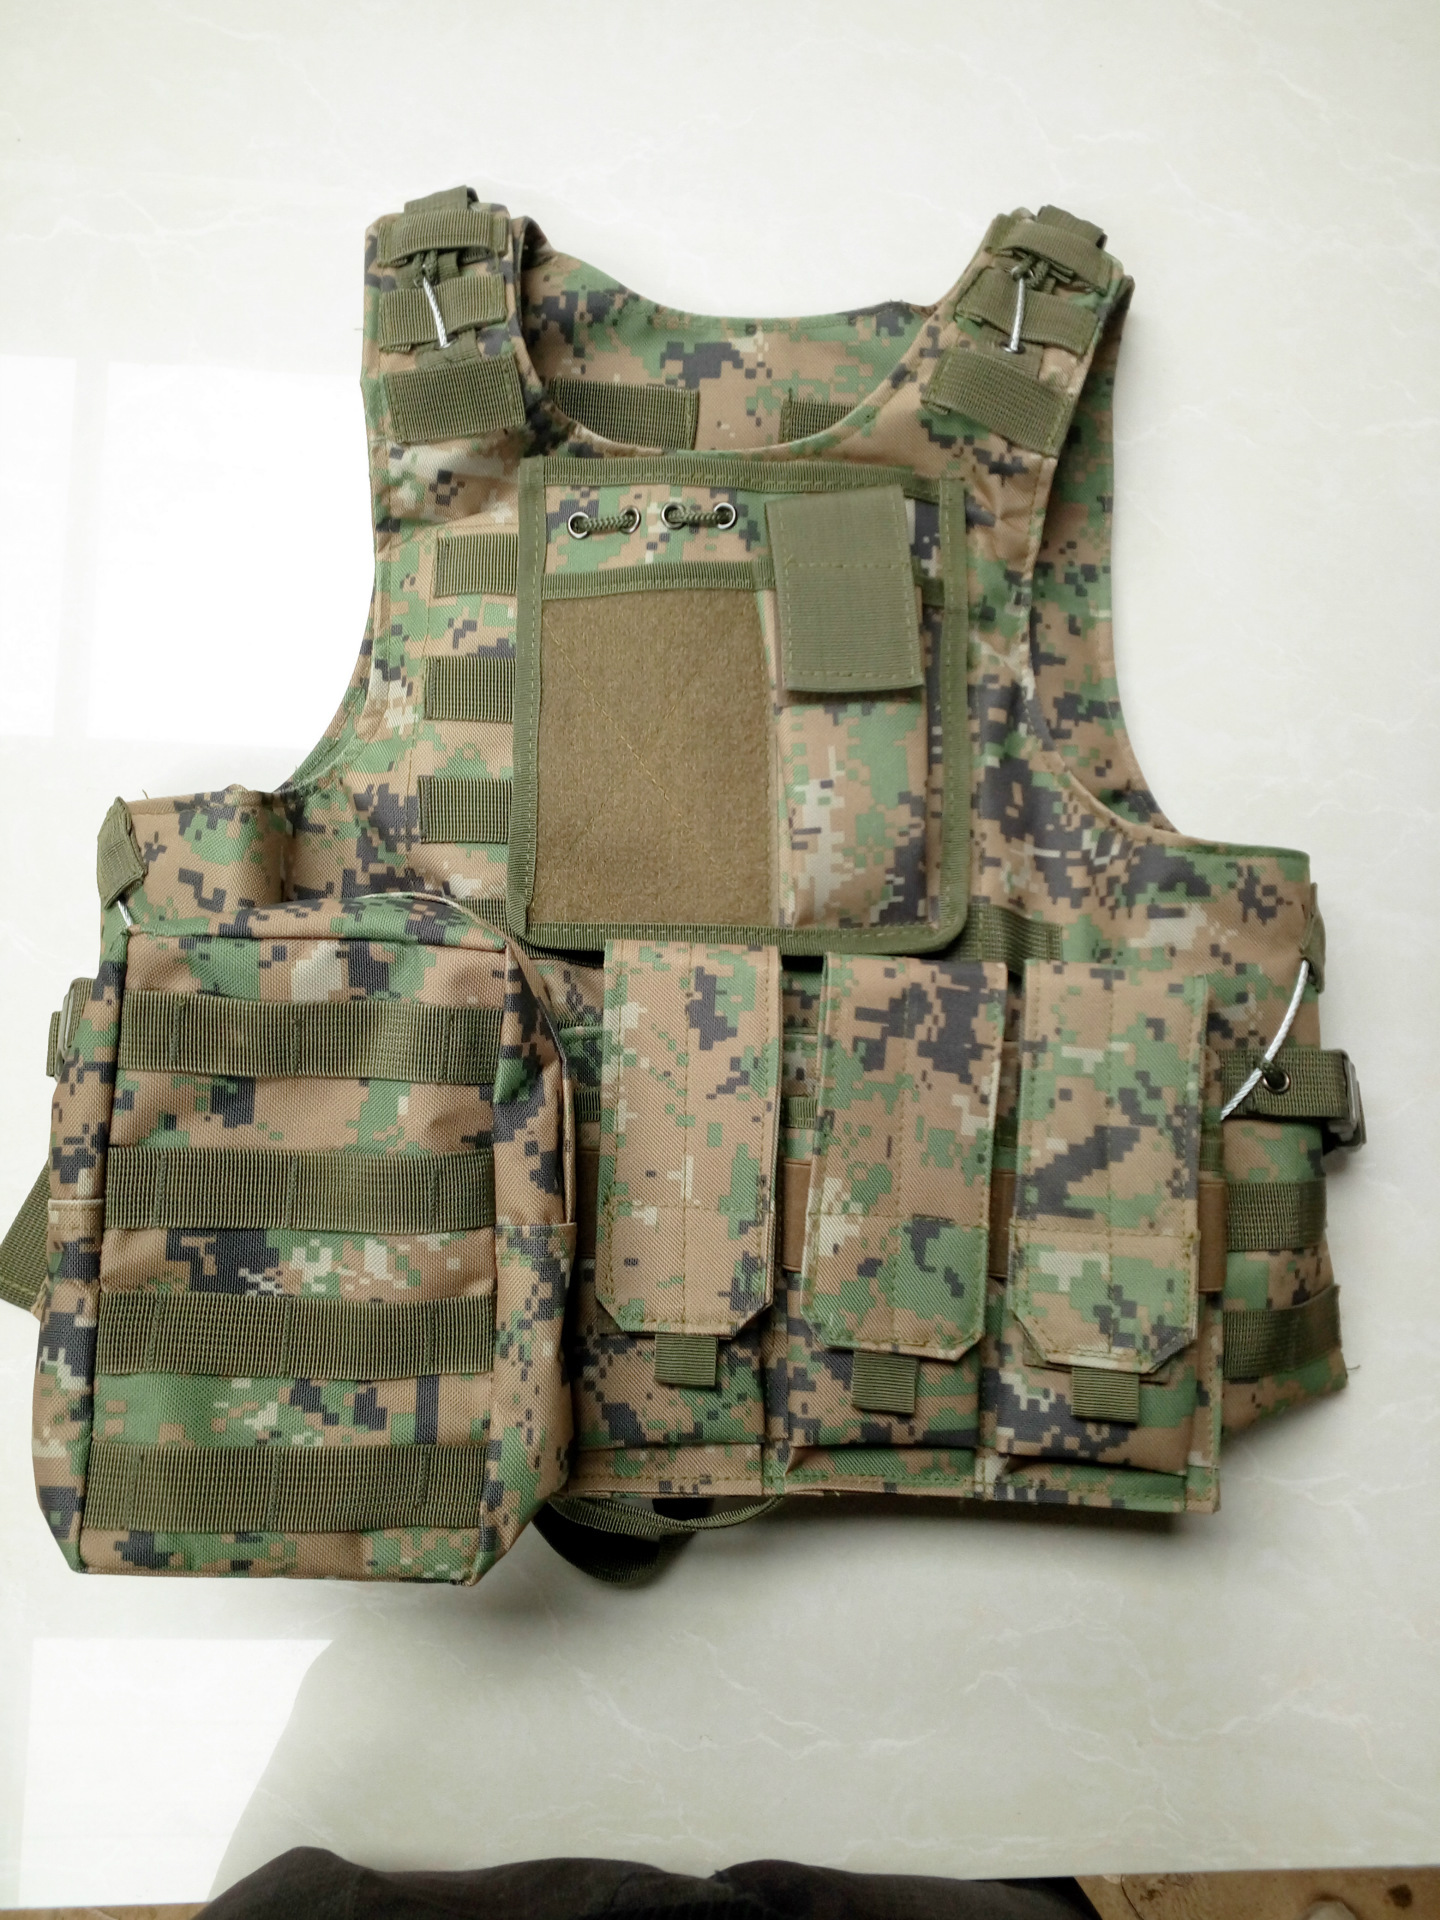 Counter Strike Cosplay Game Equipment Tactical Vest Outdoor Survival Adventure Equipment Python Protective Vest